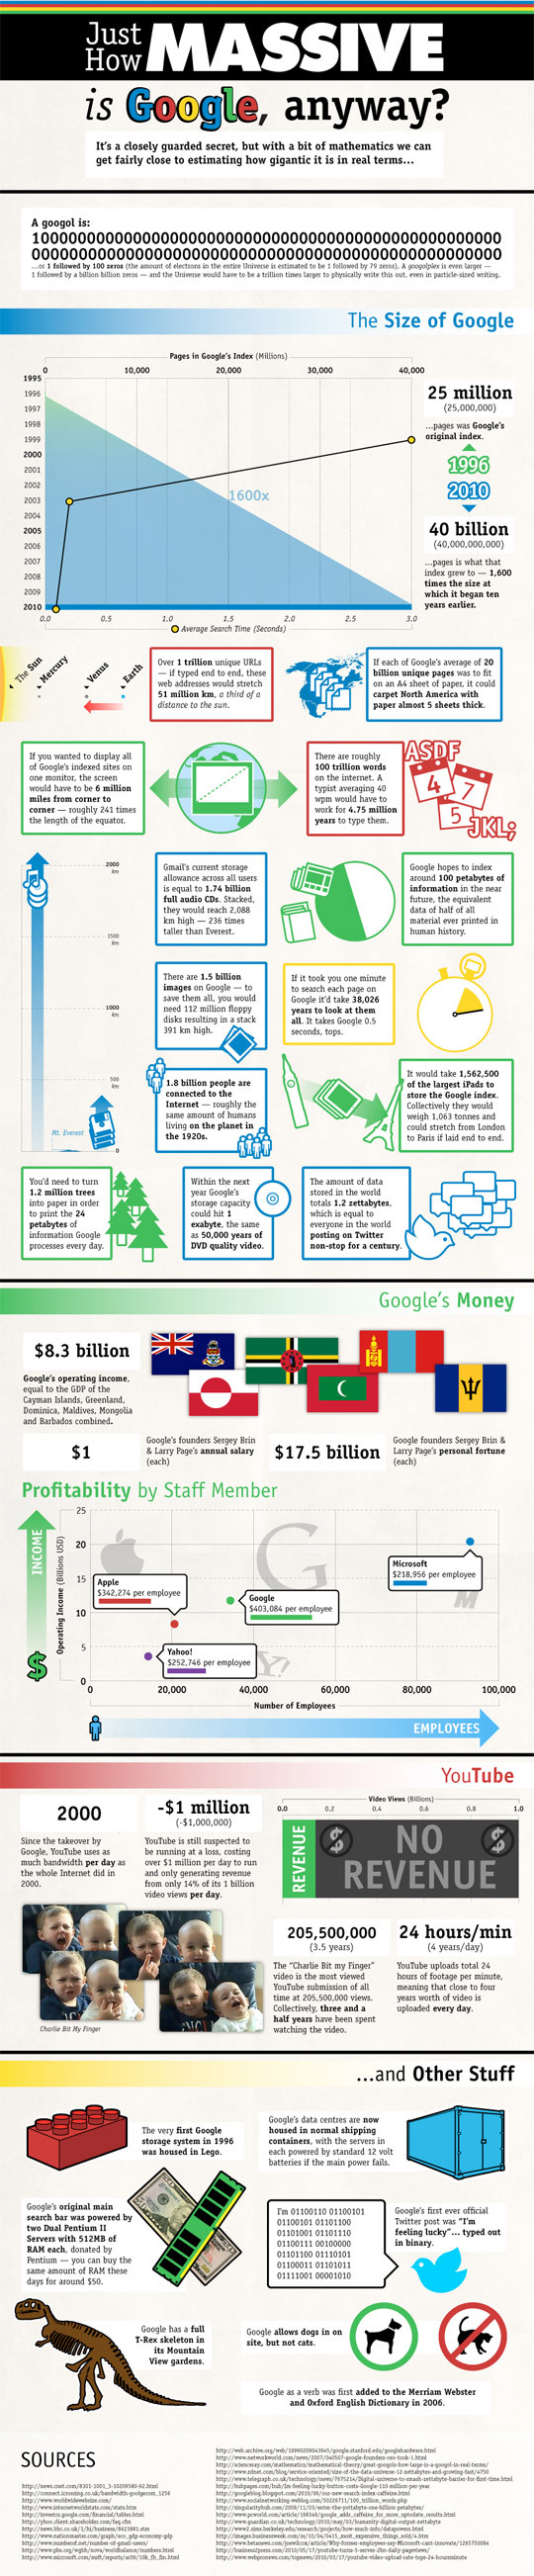 How-Massive-Is-Google-infographic